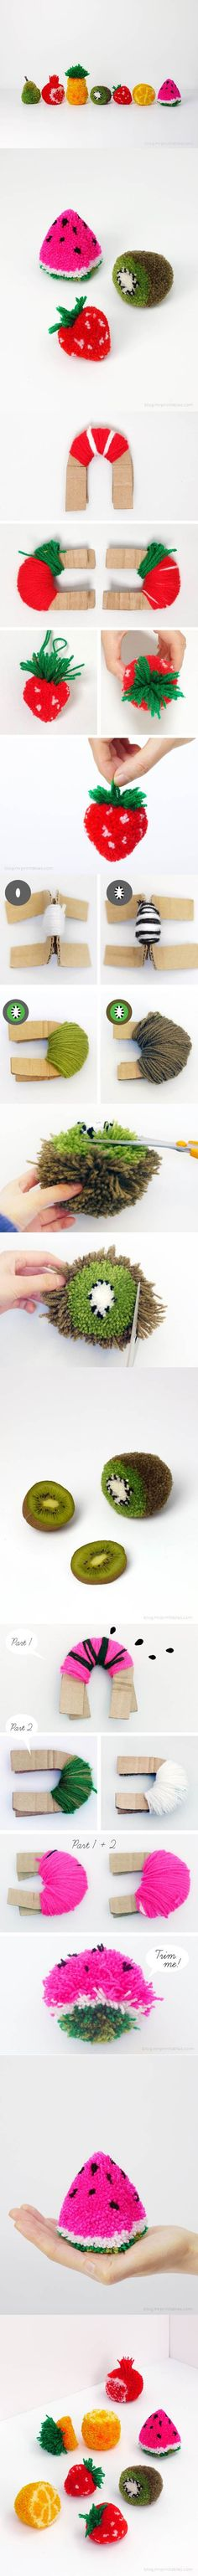 Discover thousands of images about DIY : pompons en forme de fruits. Cute Crafts, Crafts To Do, Hobbies And Crafts, Yarn Crafts, Crafts For Kids, Arts And Crafts, Decor Crafts, Cool Diy Projects, Craft Projects